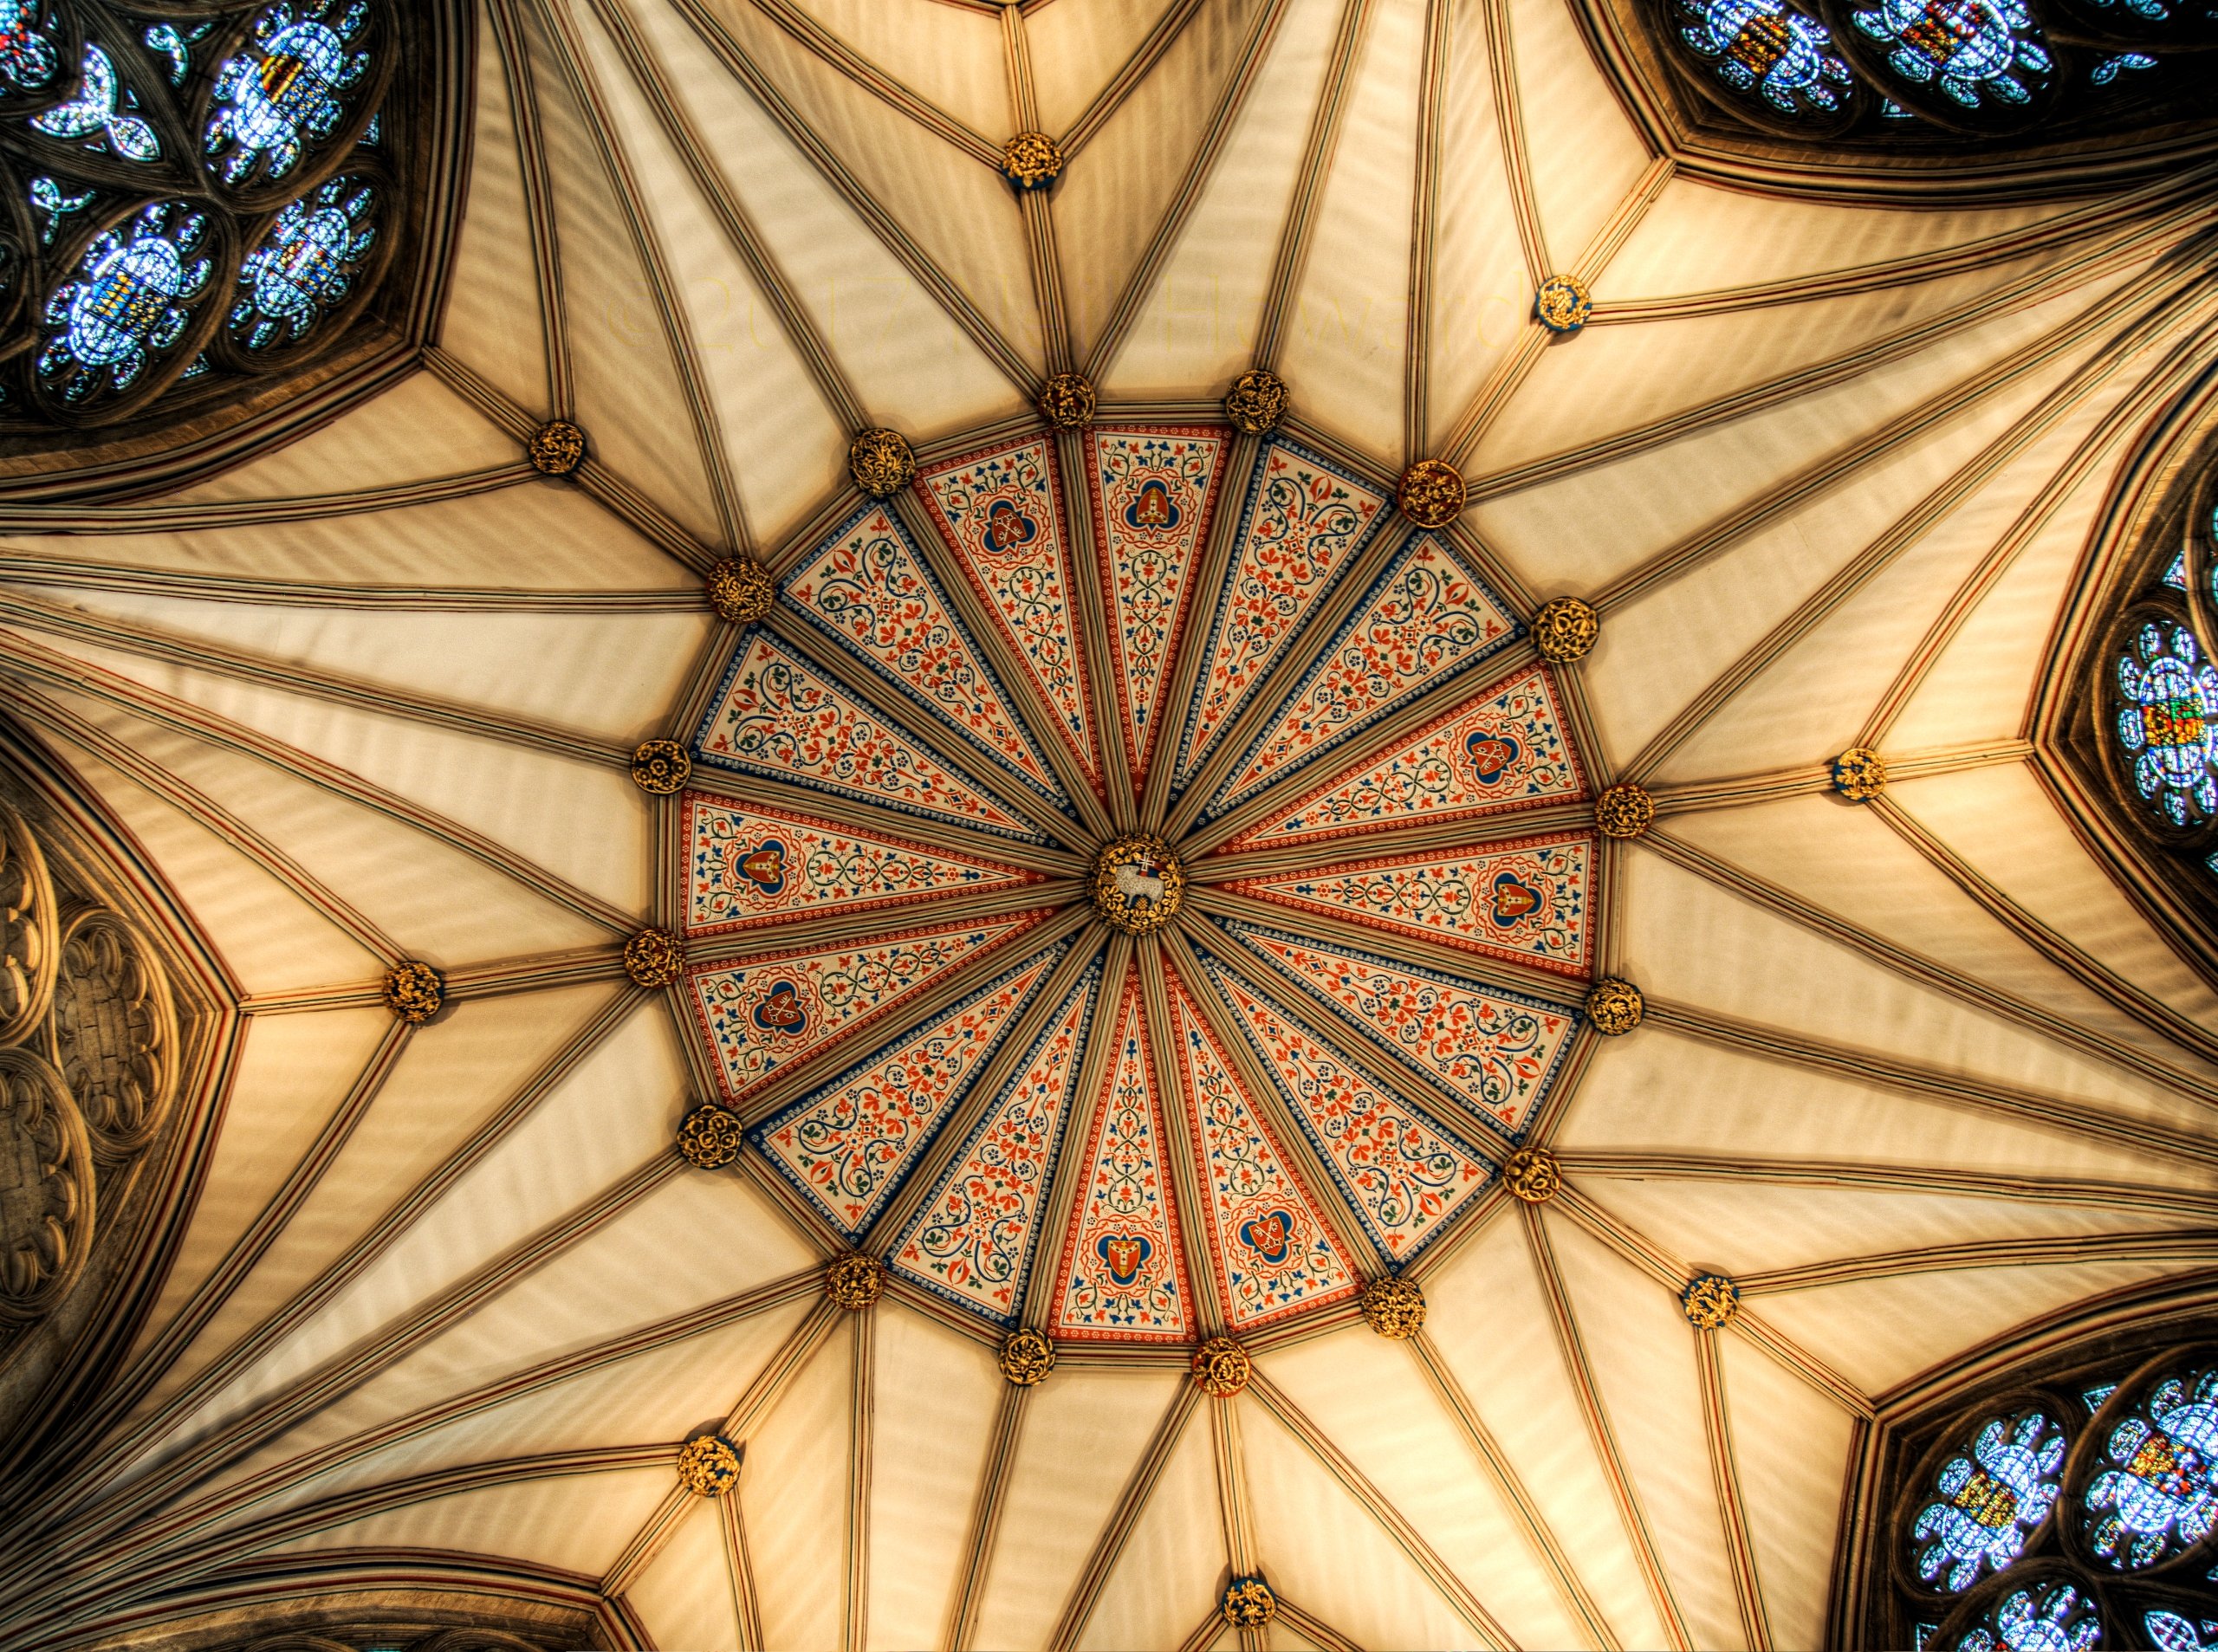 Ceiling Chapter House York Mins - neilhoward | ello